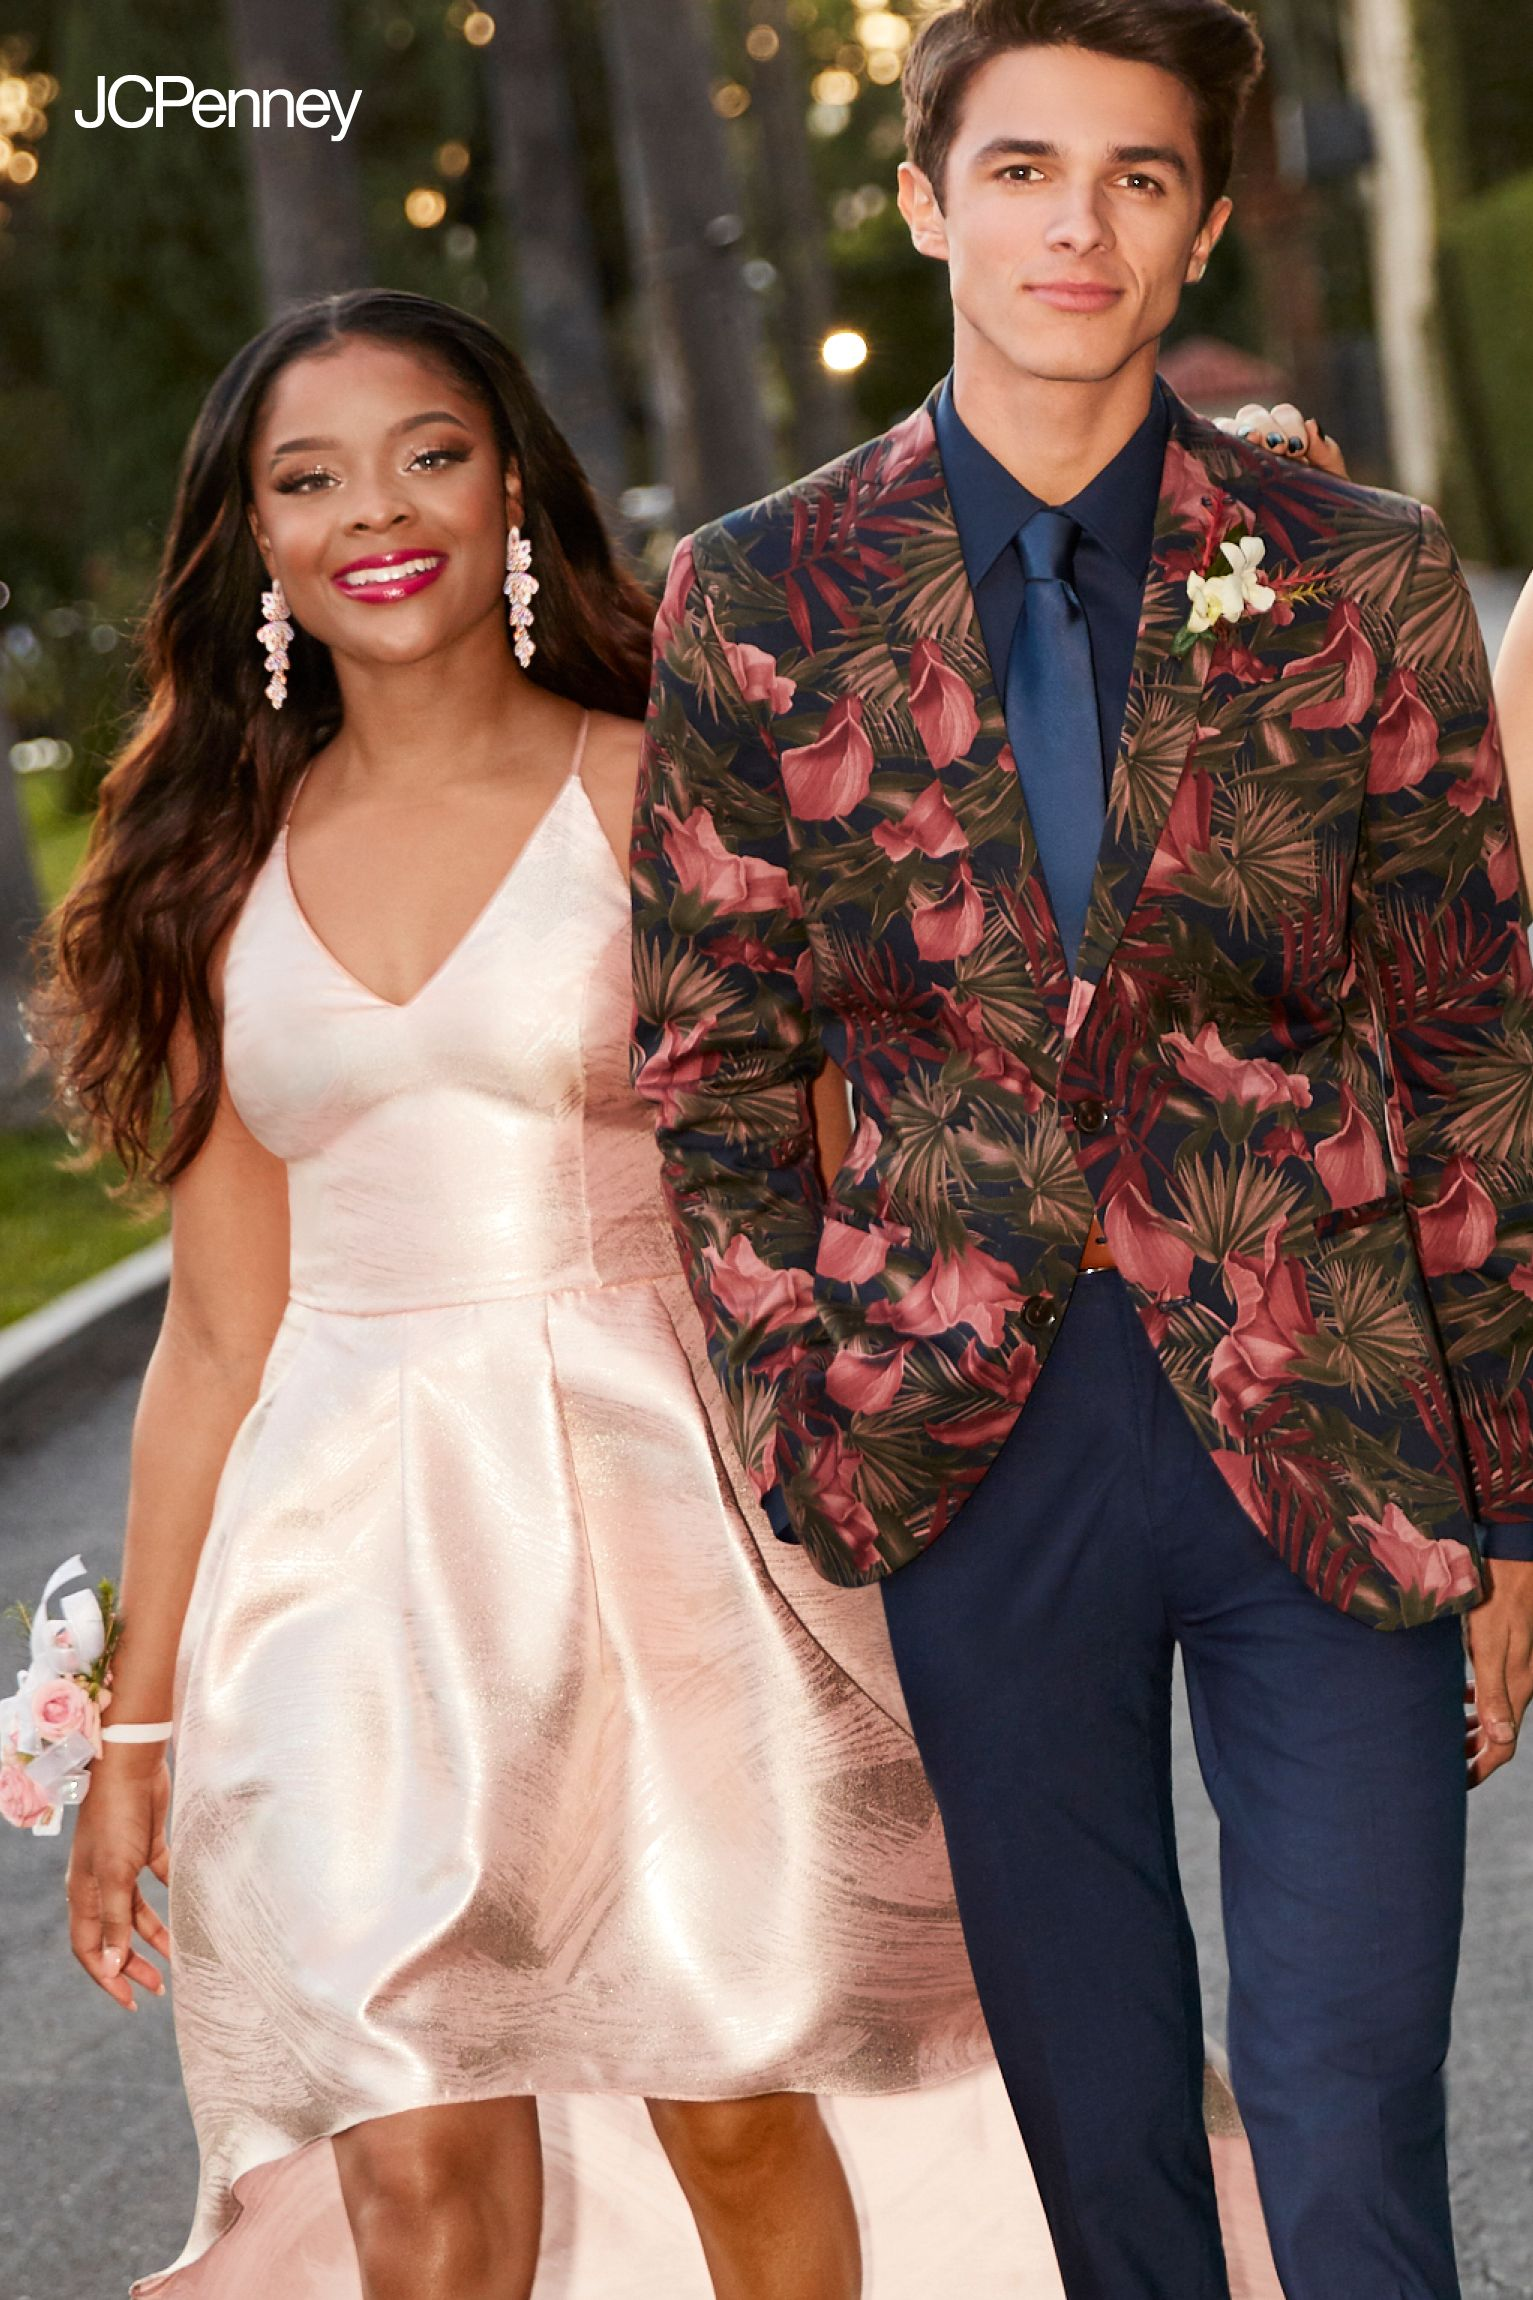 9bd1187f4e5 Shop JCPenney s prom shop for looks worthy of the red carpet. We ve got  everyting from elegant prom dresses to guys  jackets